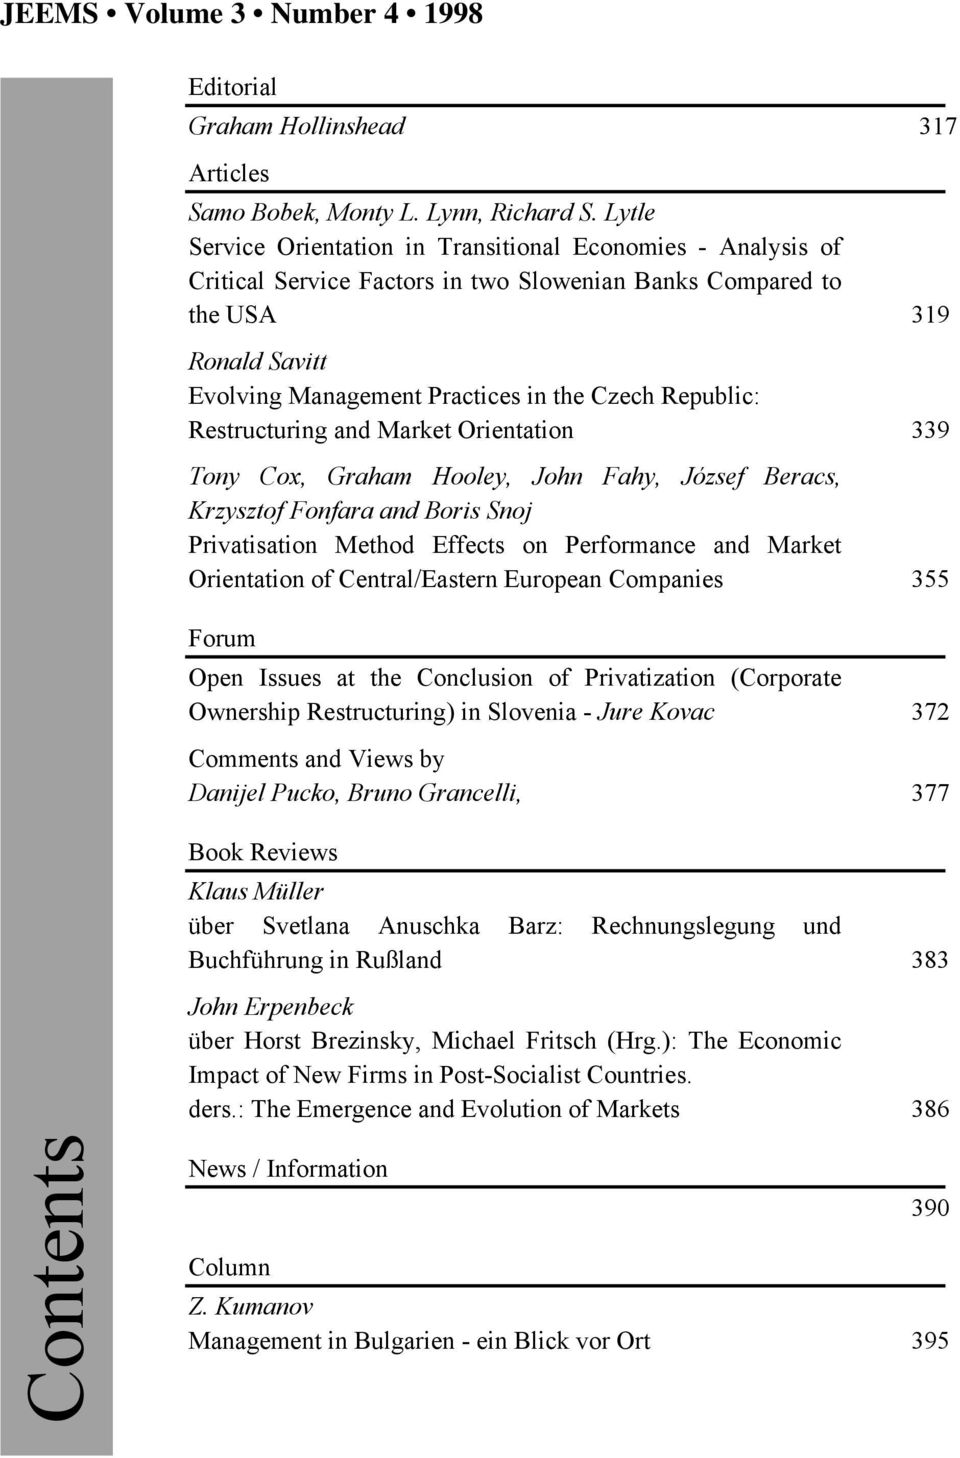 Republic: Restructuring and Market Orientation 339 Tony Cox, Graham Hooley, John Fahy, József Beracs, Krzysztof Fonfara and Boris Snoj Privatisation Method Effects on Performance and Market